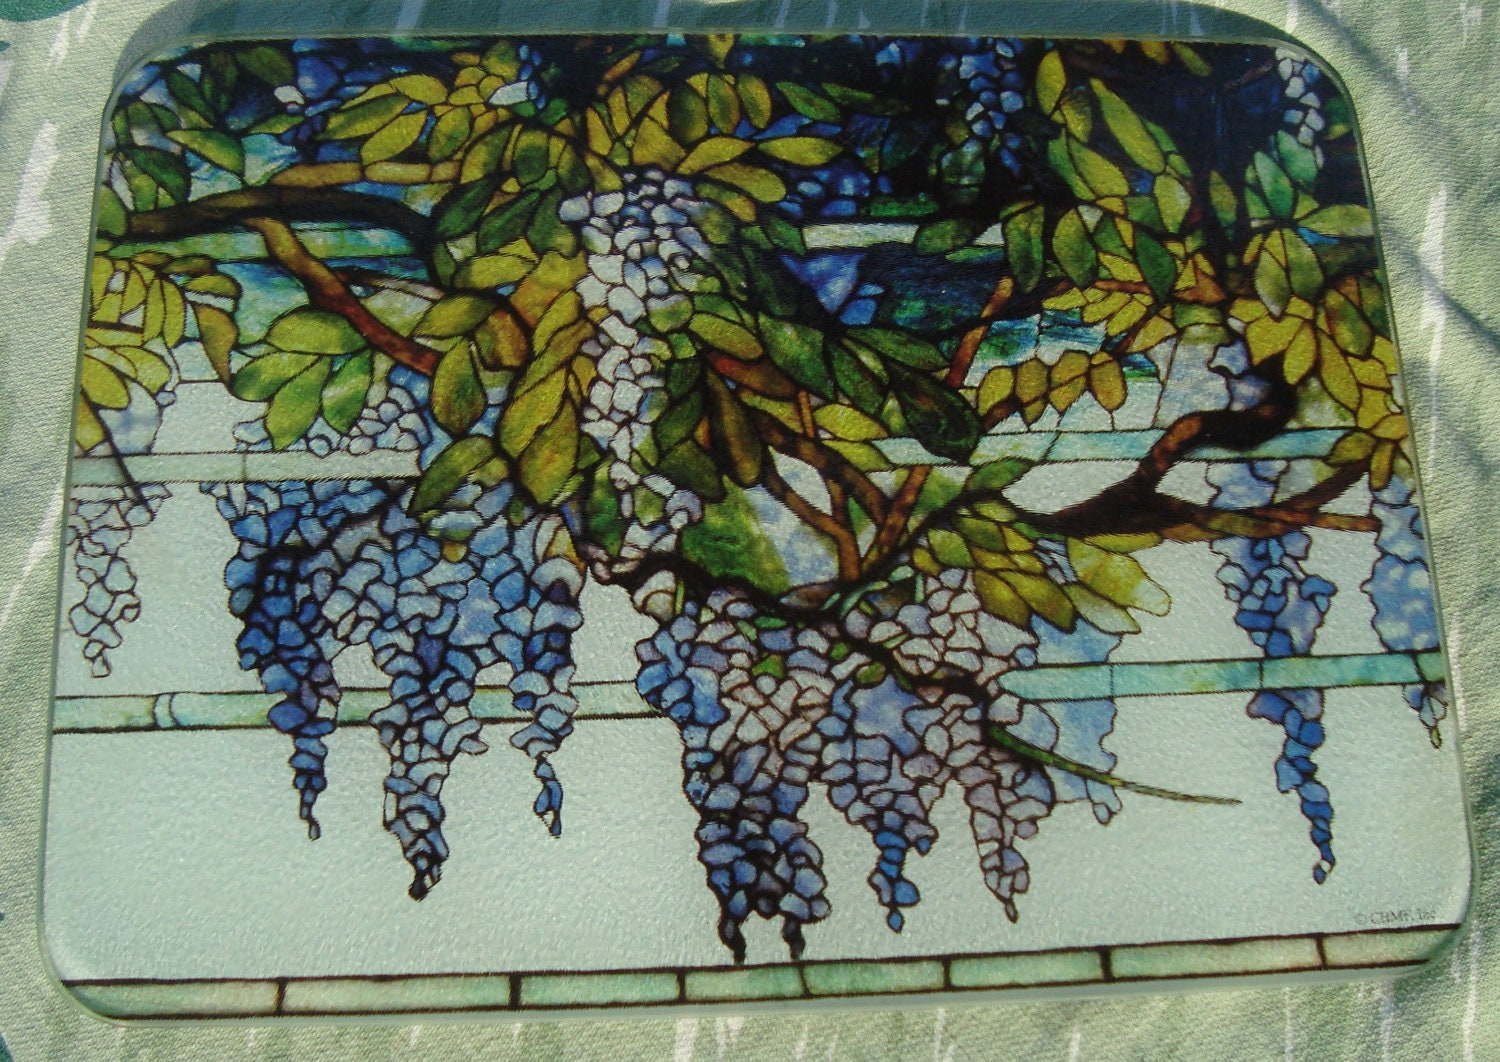 Wisteria tempered glass cutting board vintage by dominiondesign - Decorative tempered glass cutting boards ...